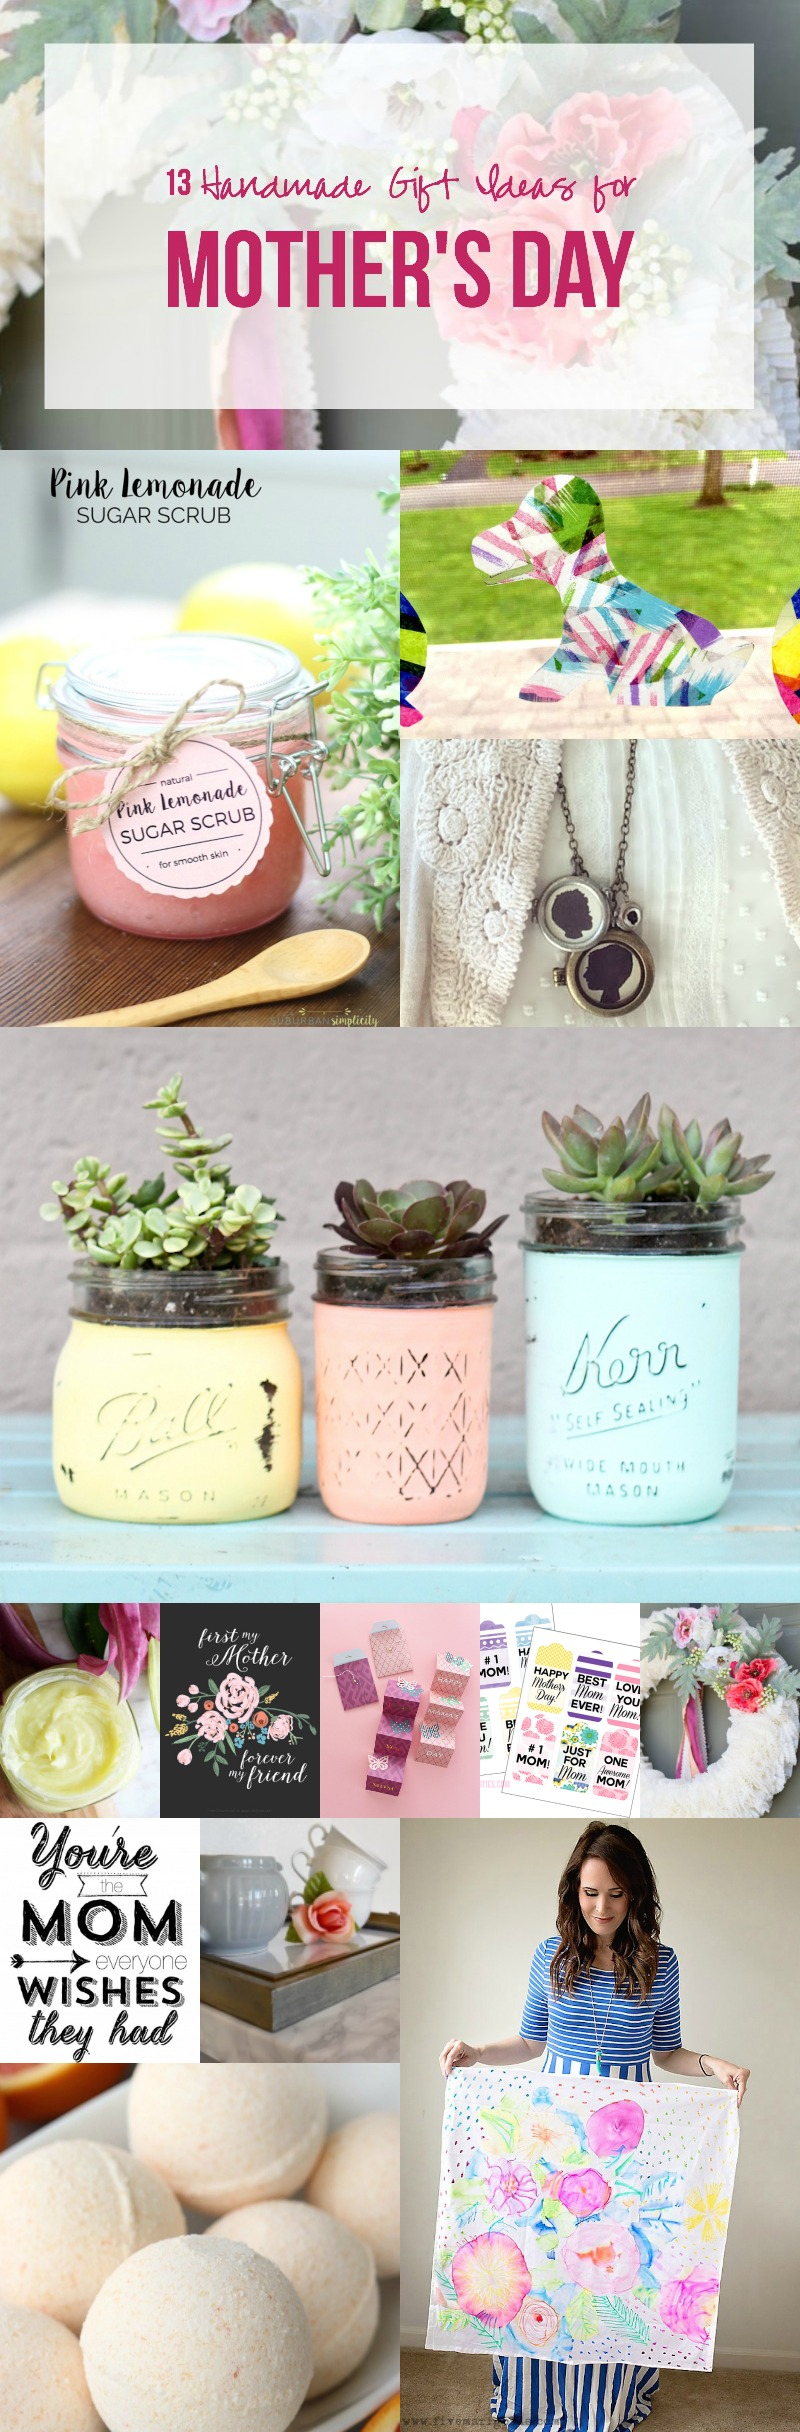 13 Handmade Gift Ideas for Mother's Day